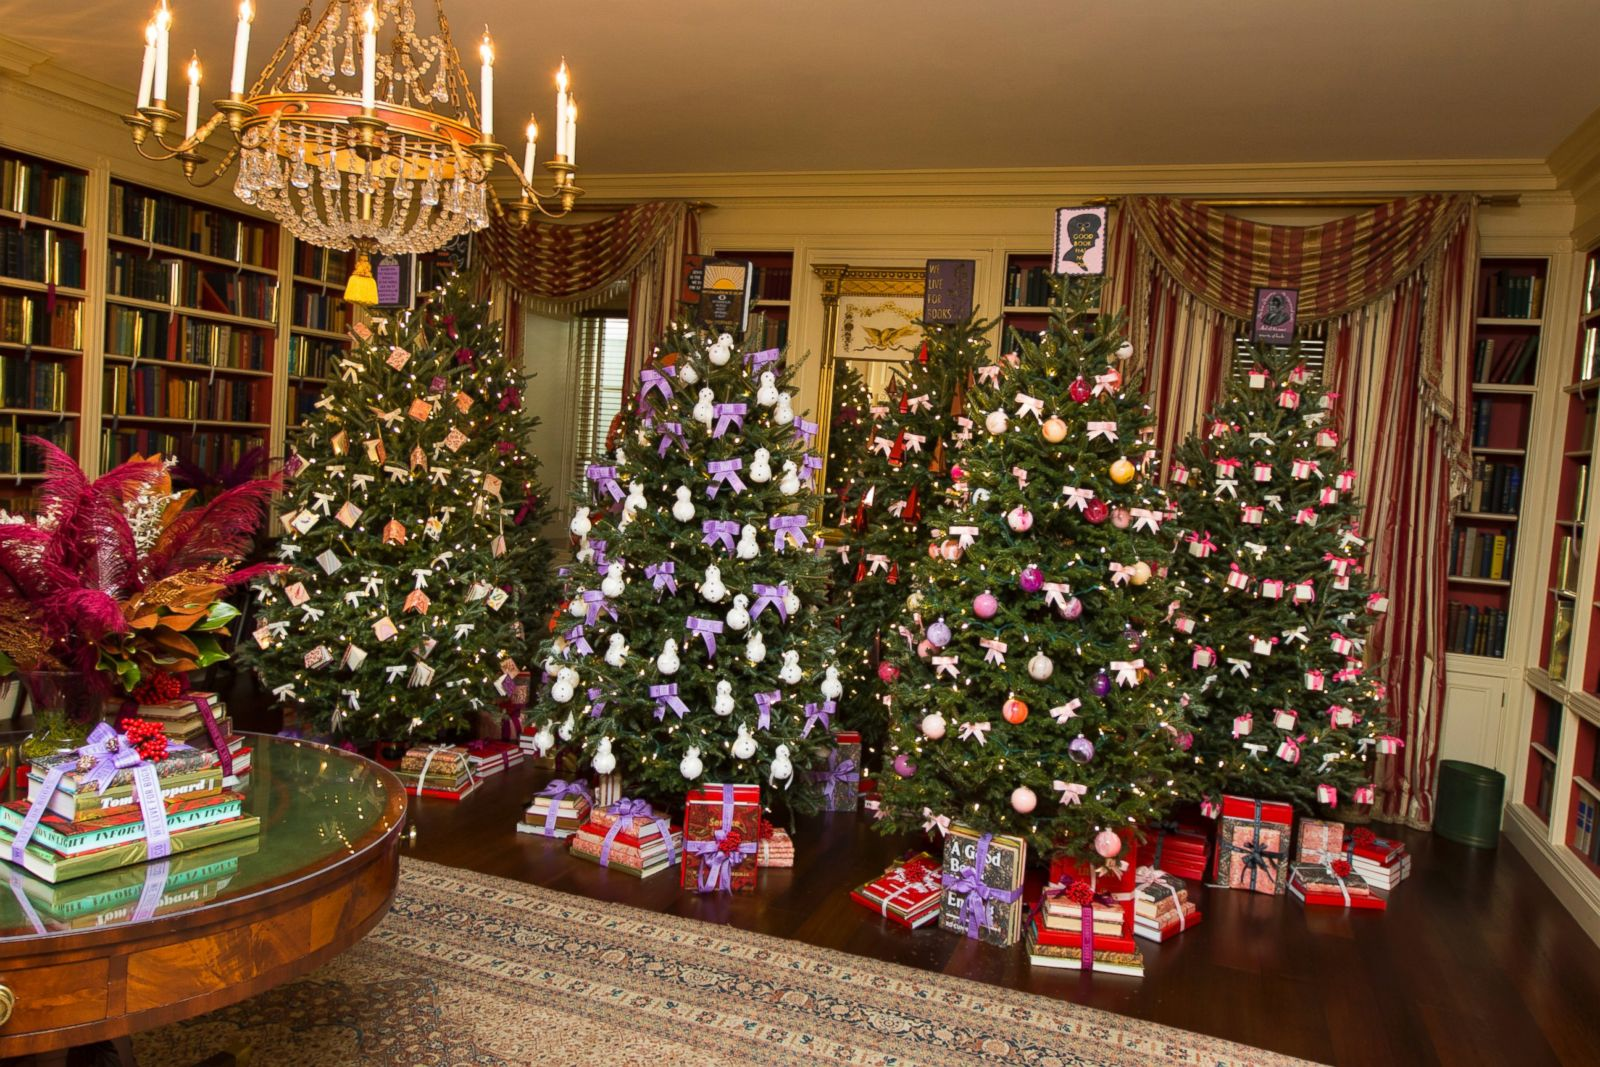 White house christmas ornaments by year - White House Christmas Ornaments By Year 11